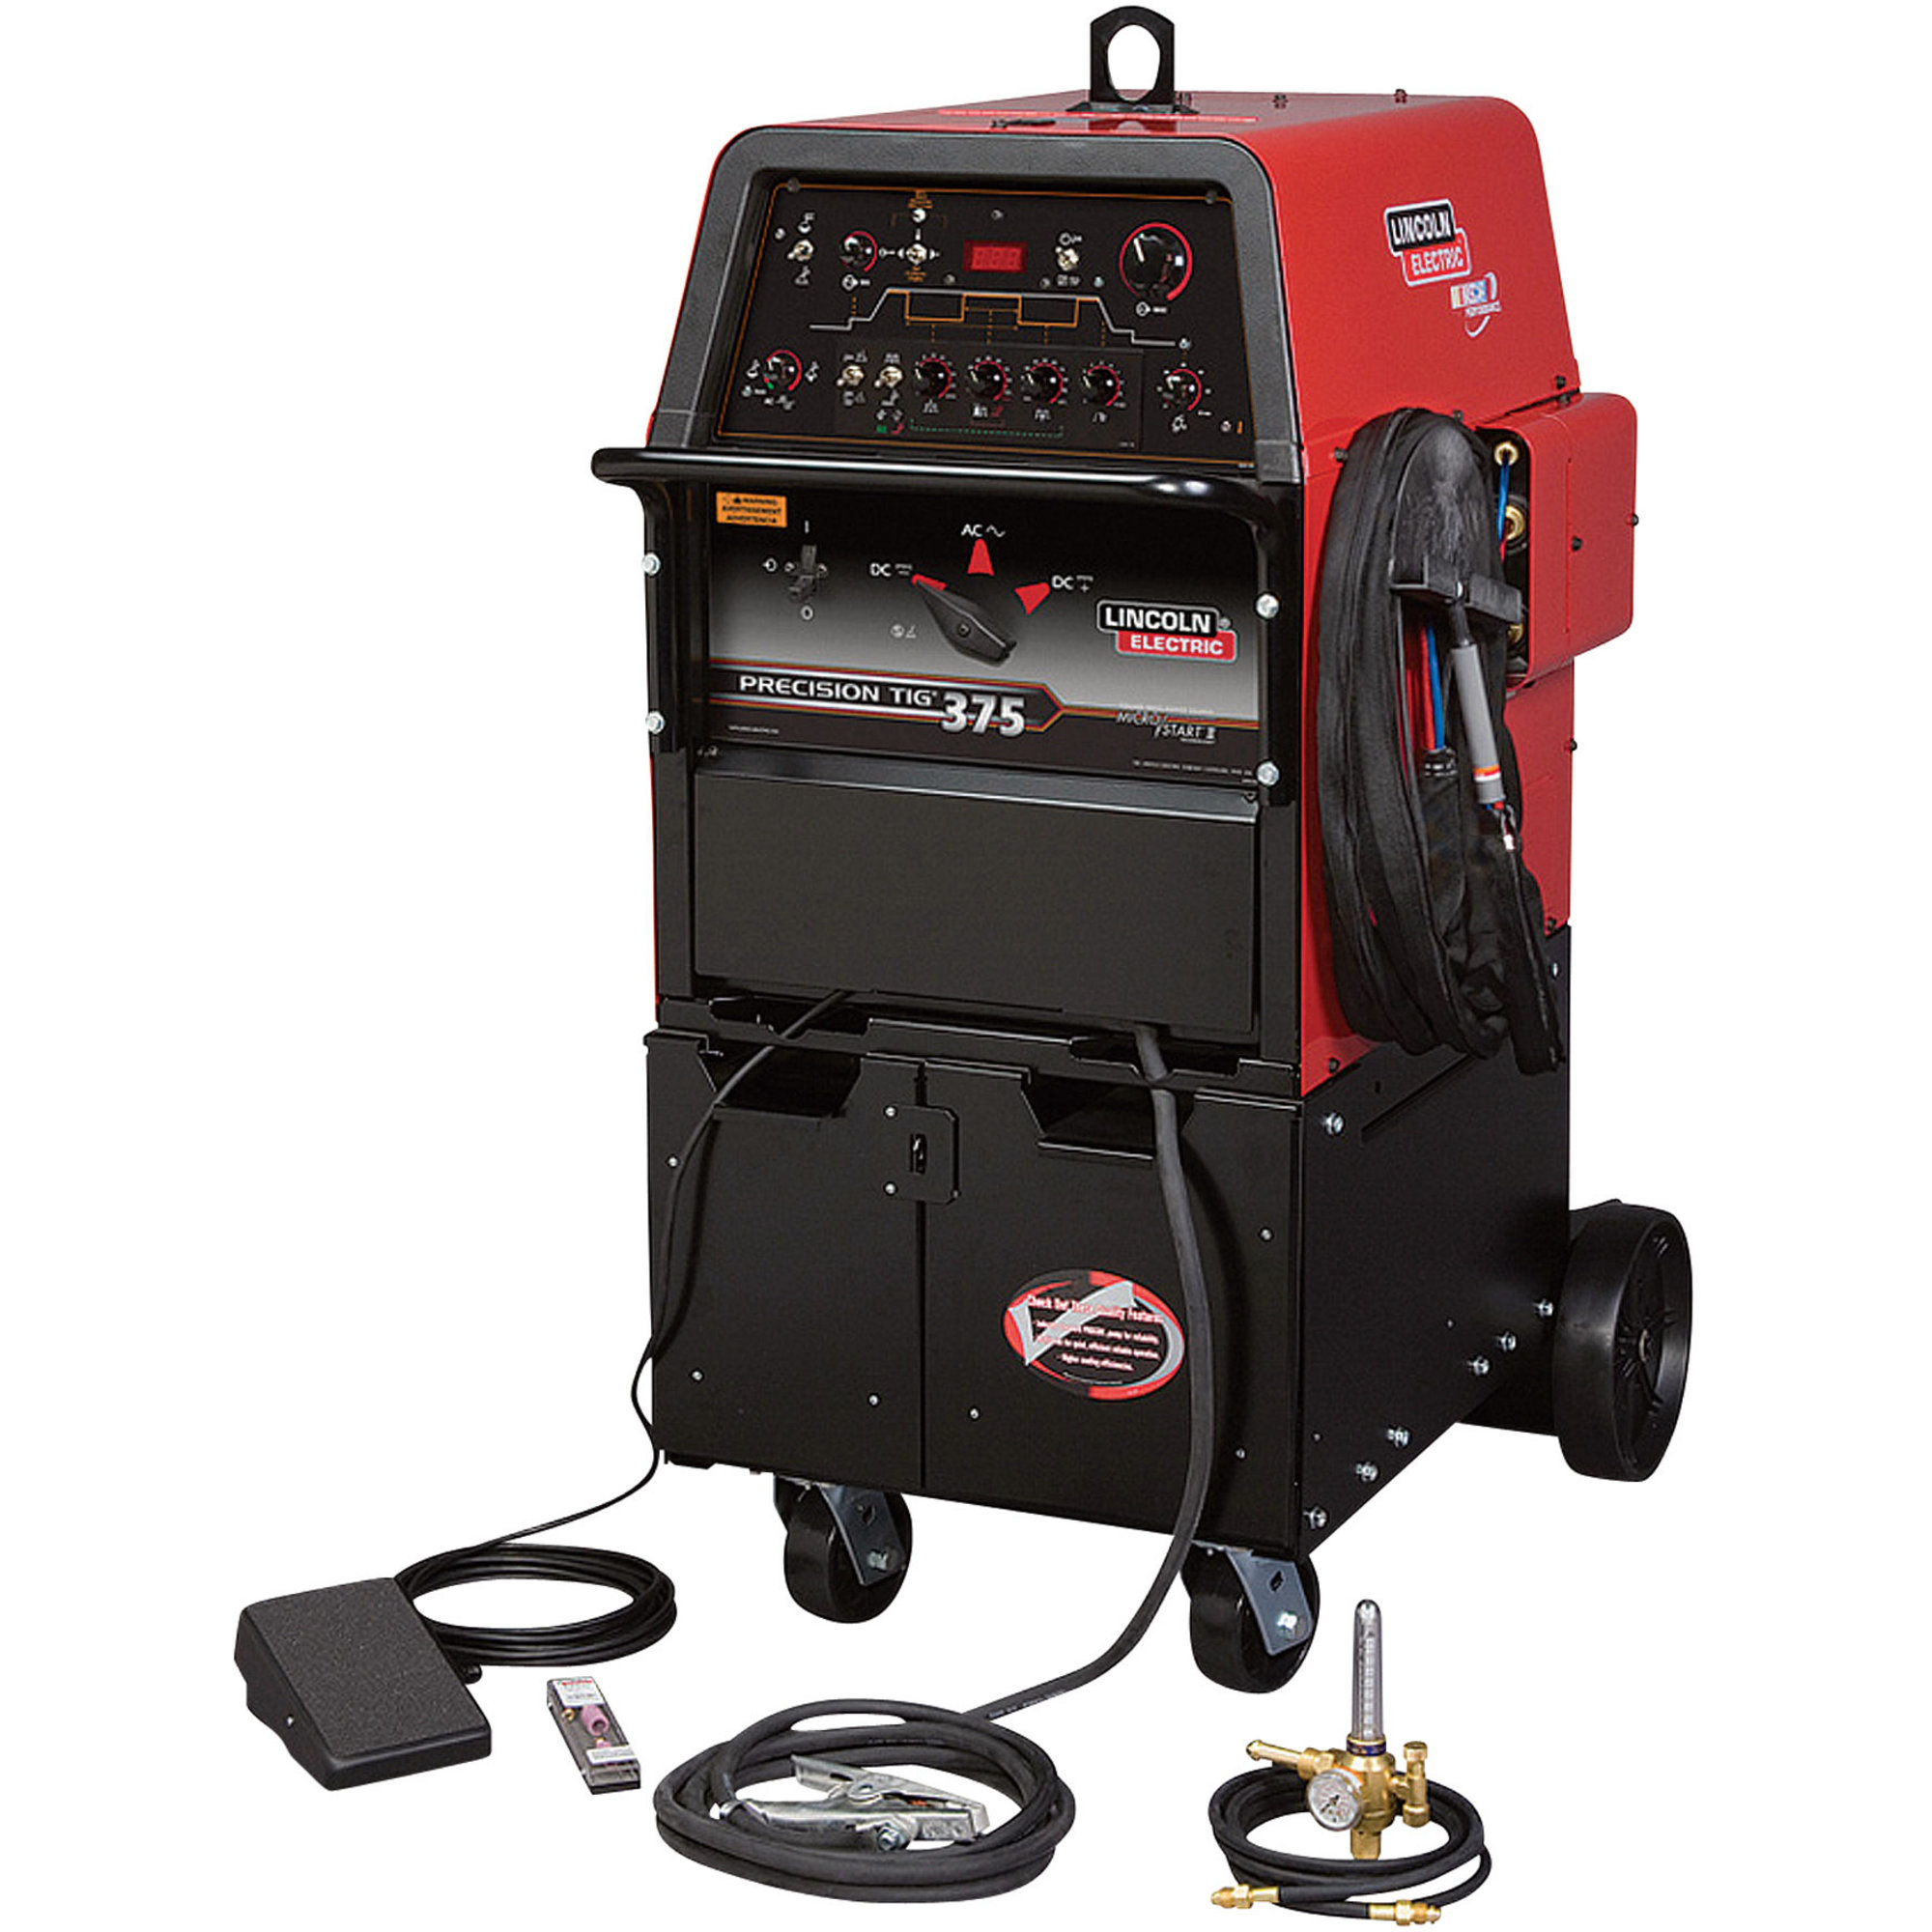 Tig Welder Rentals And Leases   KWIPPED